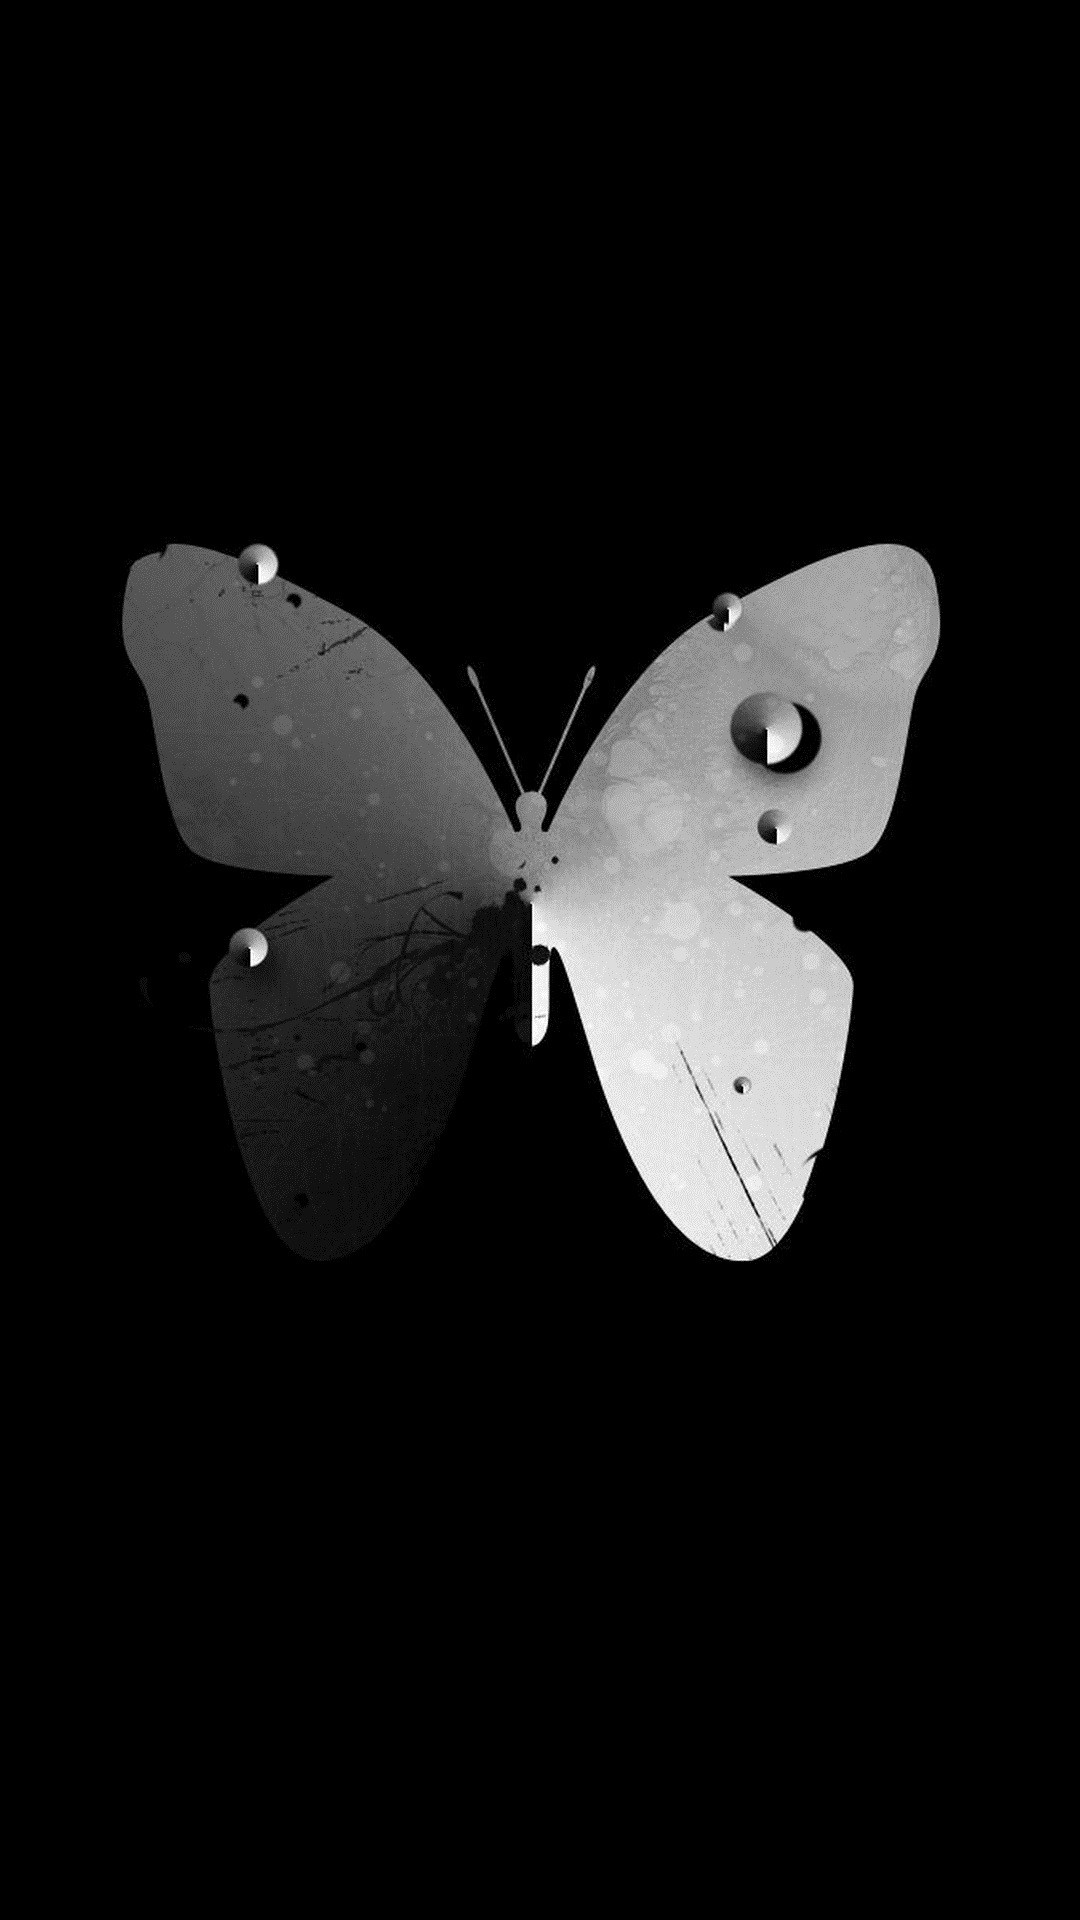 Android Wallpaper Butterfly